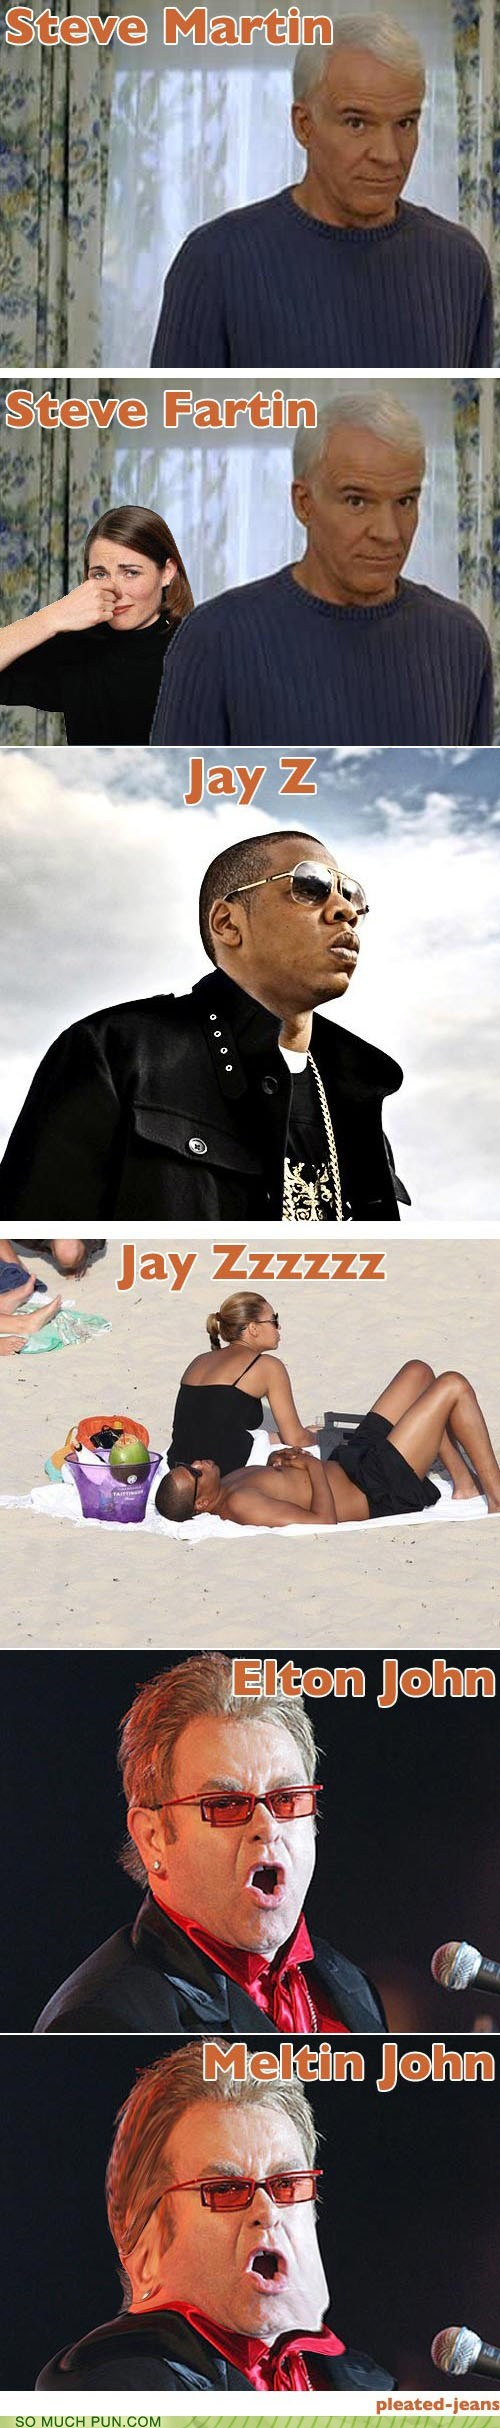 So Much Pun: Celebrity Name Puns, Round One Zillion